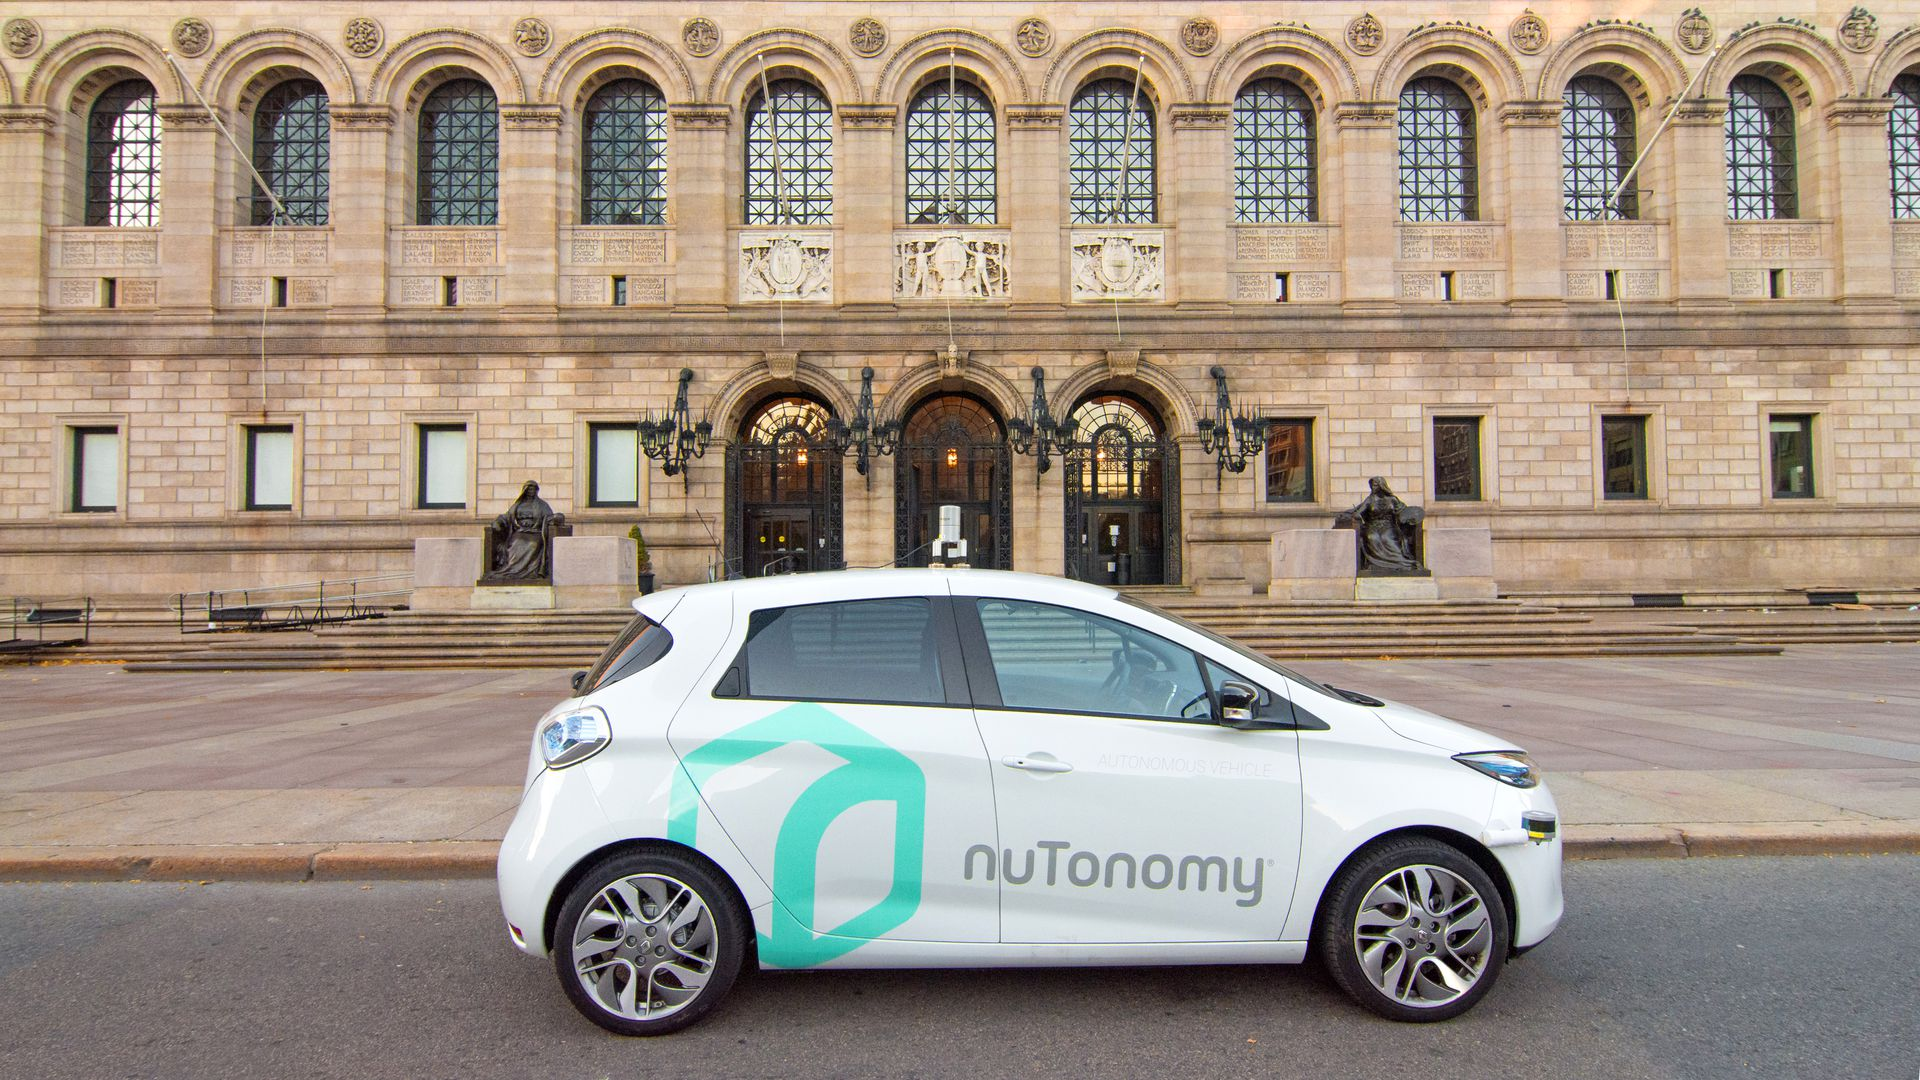 A nuTonomy test vehicle in Boston.